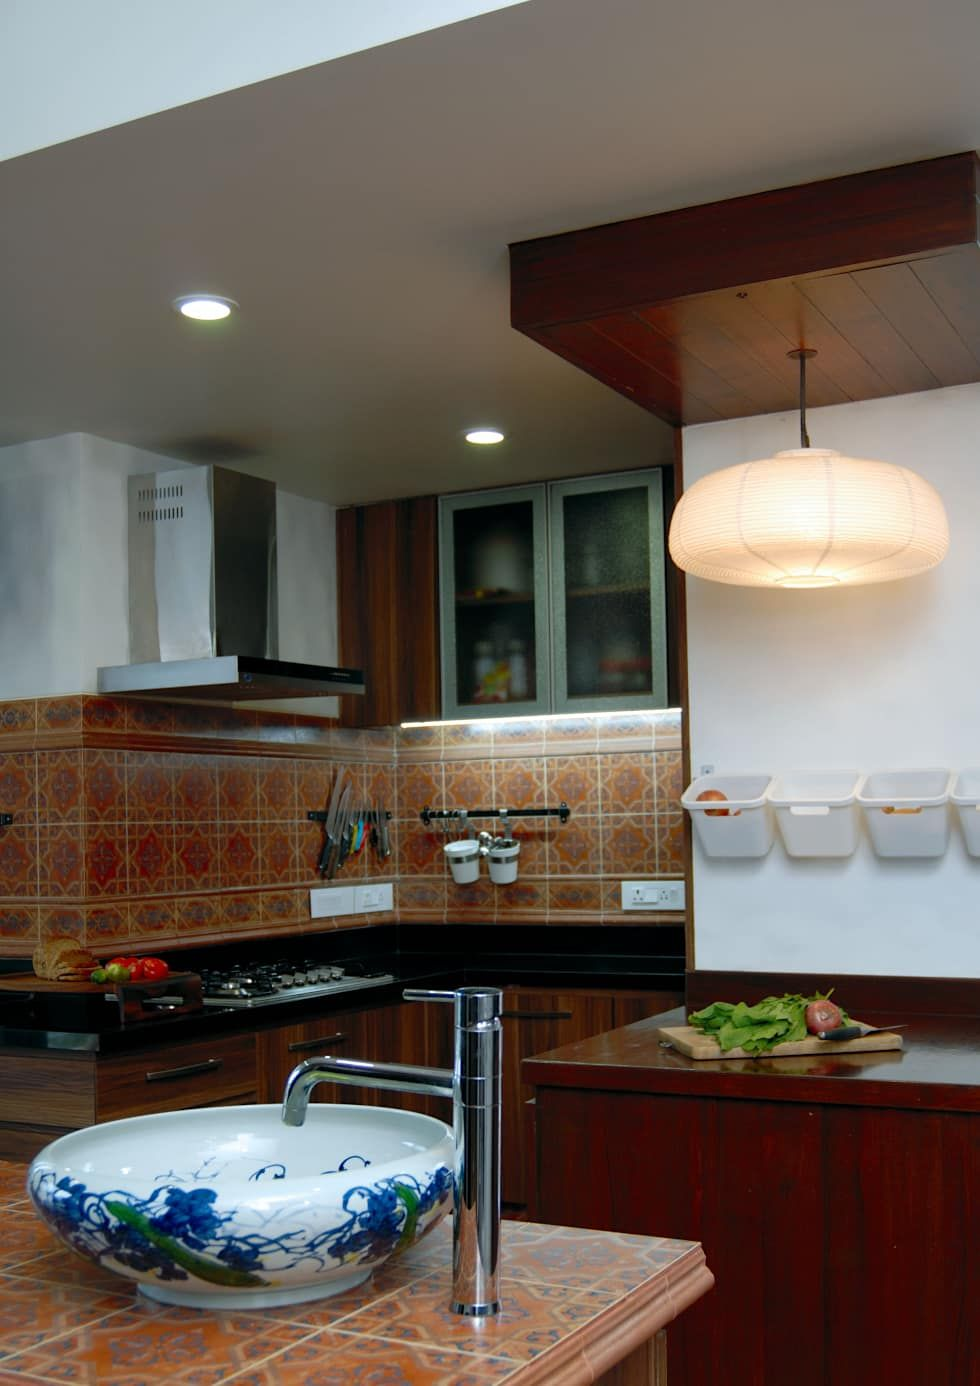 Interior Design Ideas Redecorating & Remodeling Photos  Kitchen Endearing Design New Kitchen Decorating Design